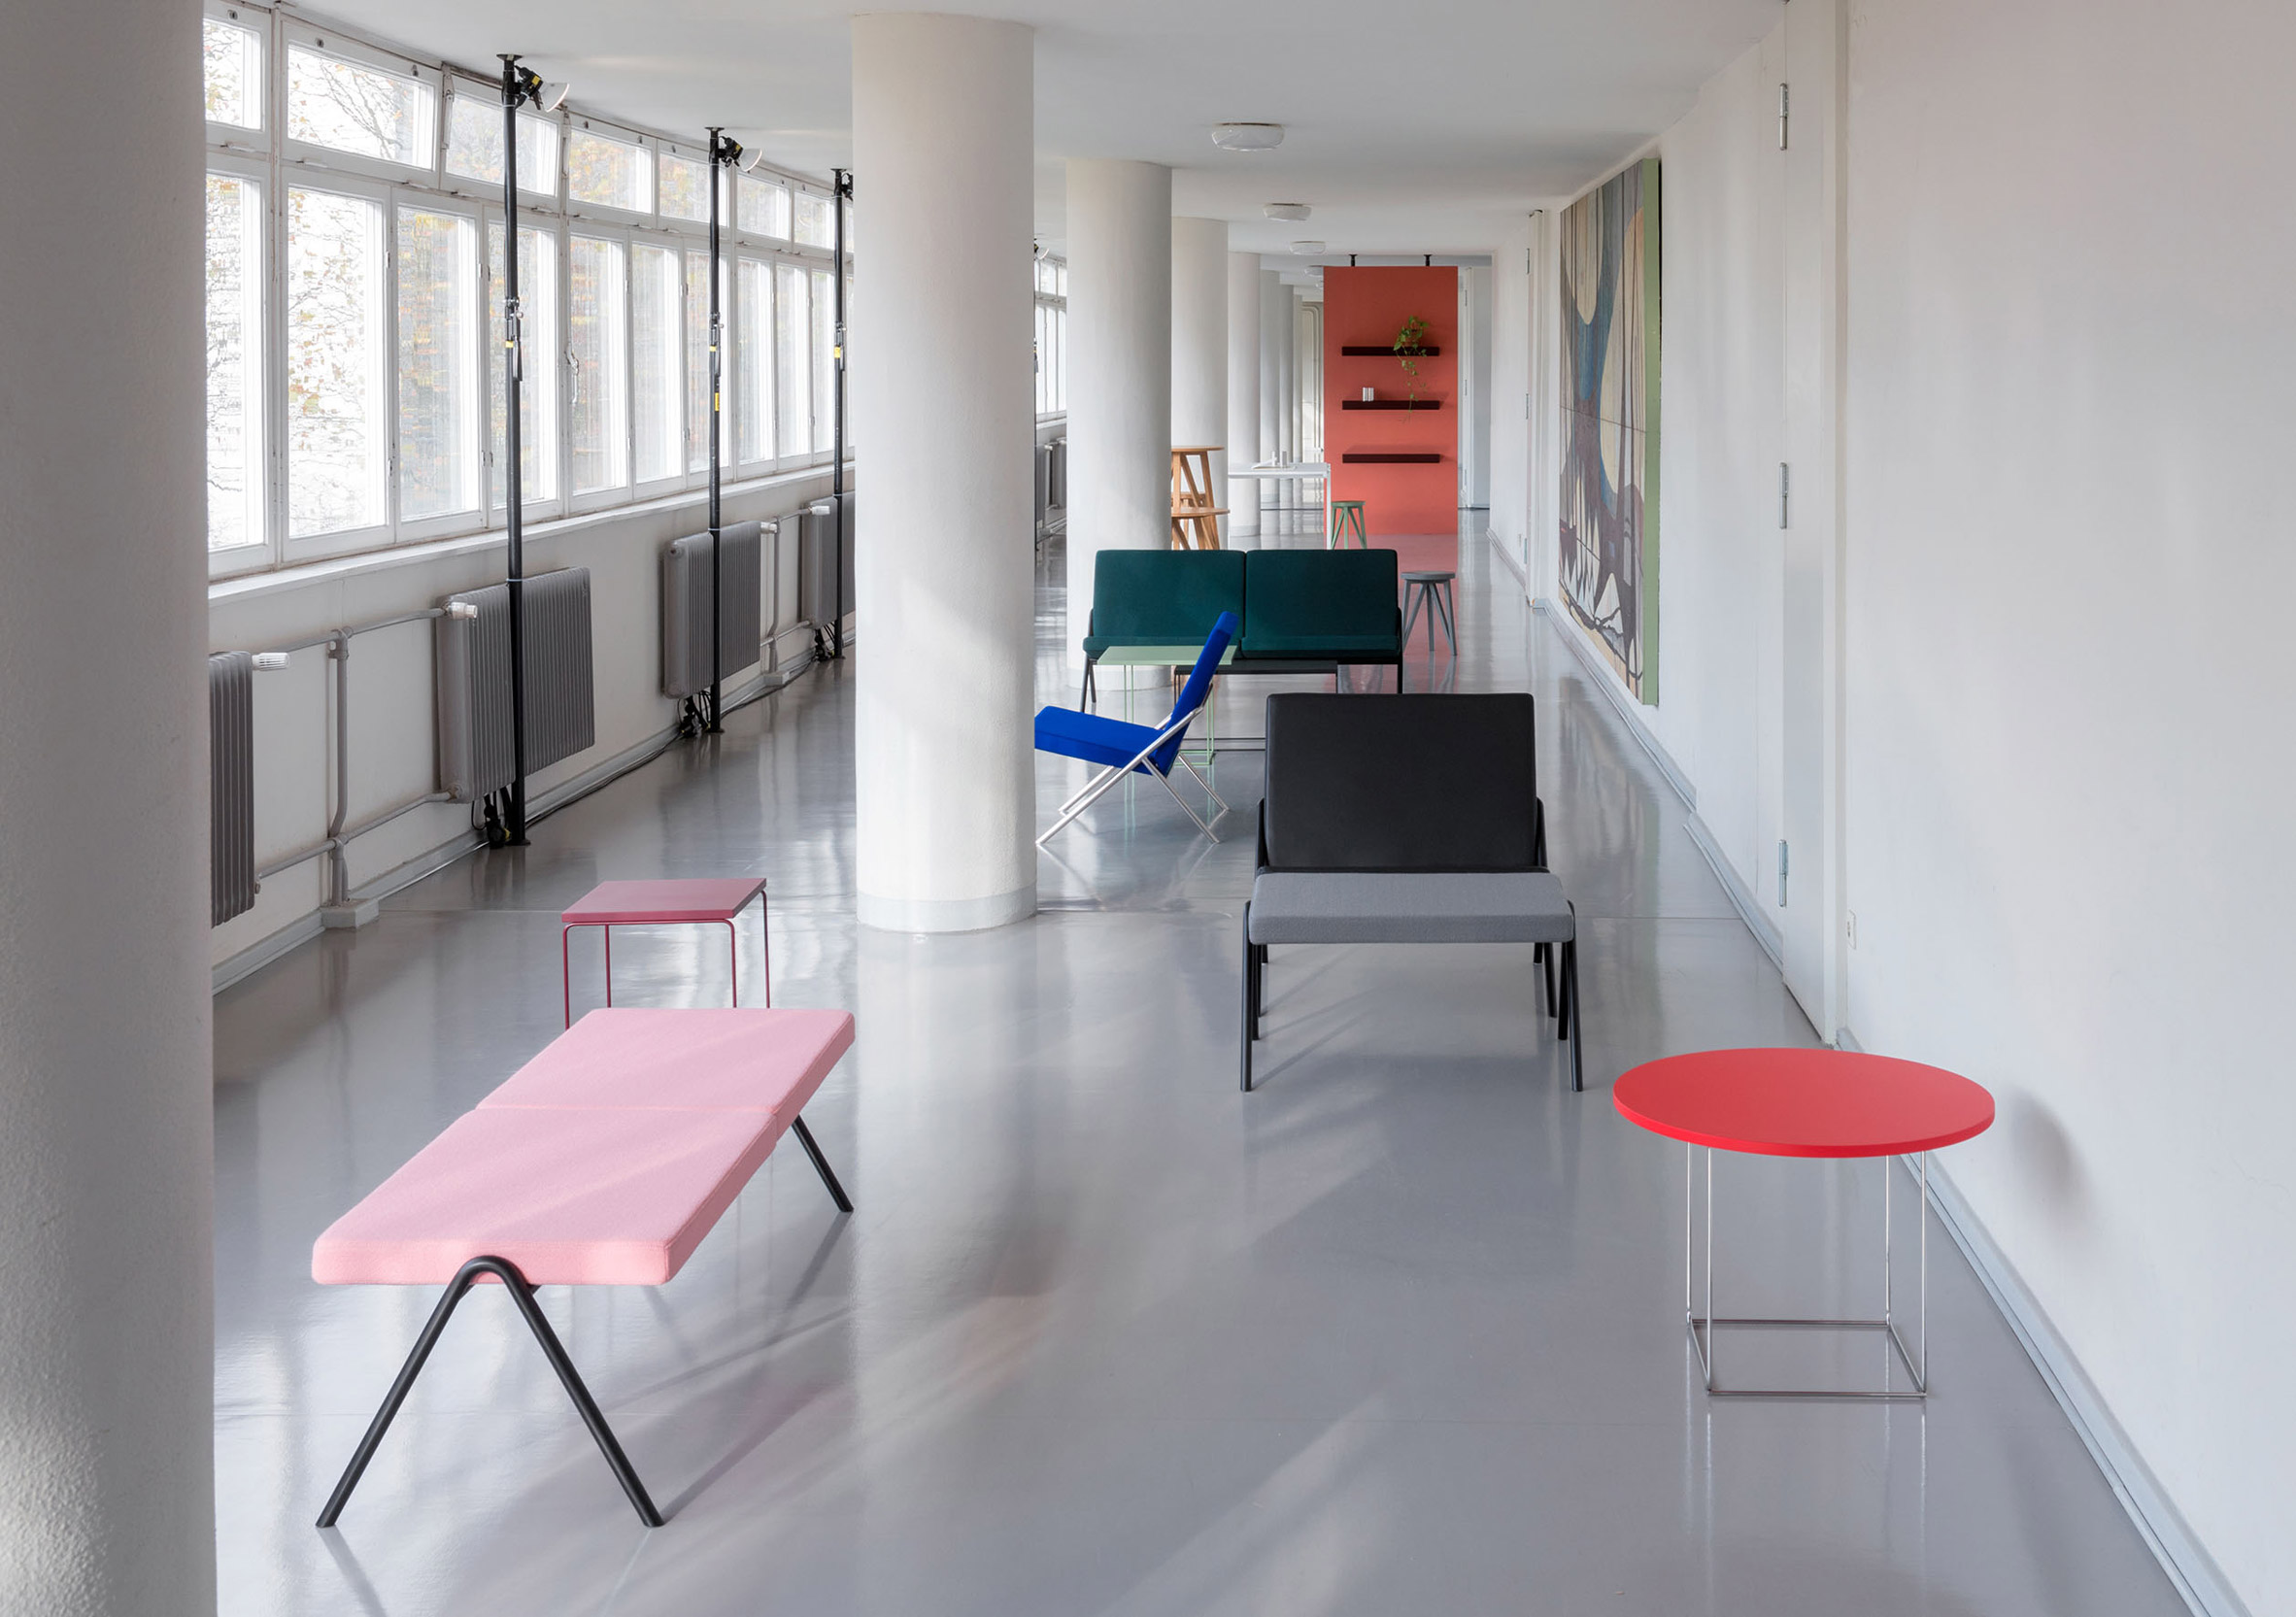 Loehr launches architecture-inspired furniture collection in house designed by Oscar Niemeyer